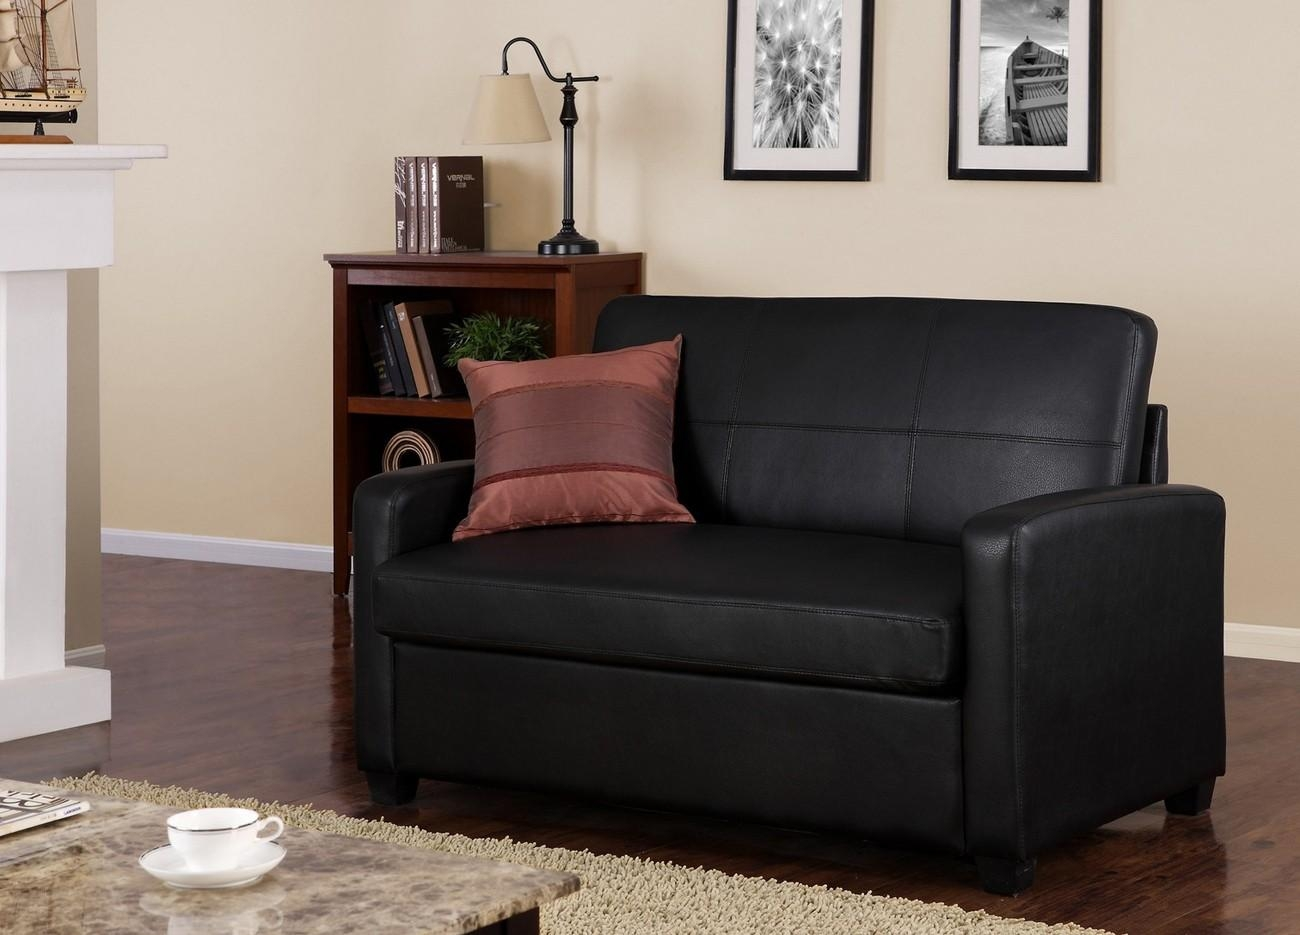 Mainstays | Black Faux Leather Sleeper Sofa With Regard To Mainstays Sleeper Sofas (View 3 of 20)